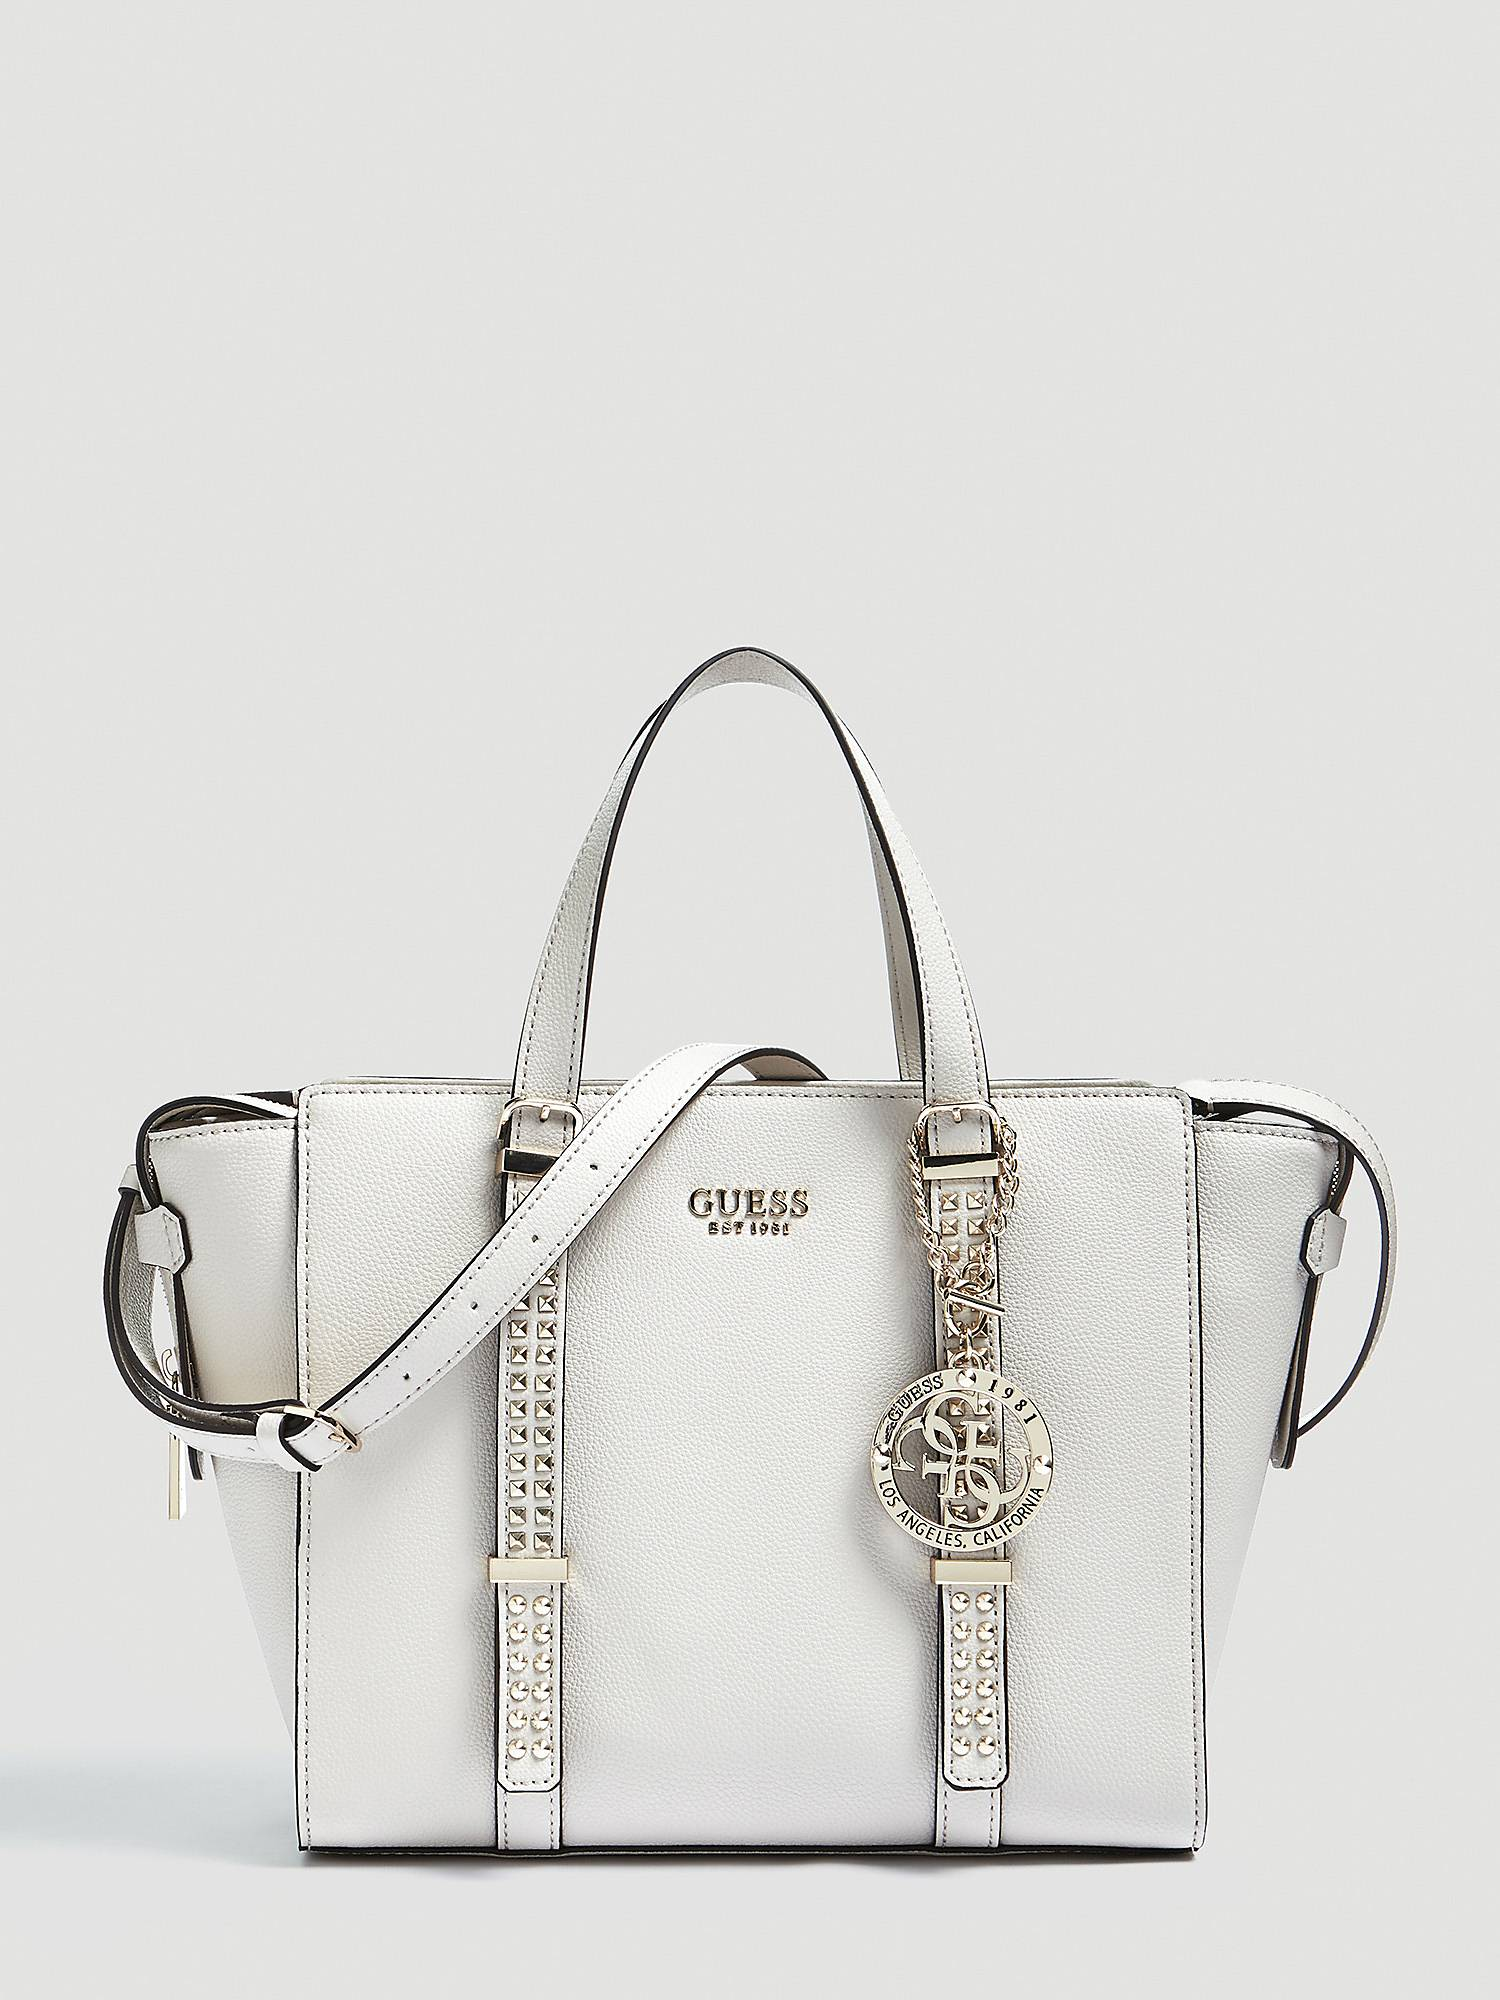 Borse Guess Bianche 2020.Buy Borse Guess Bianche Up To 75 Off Free Shipping